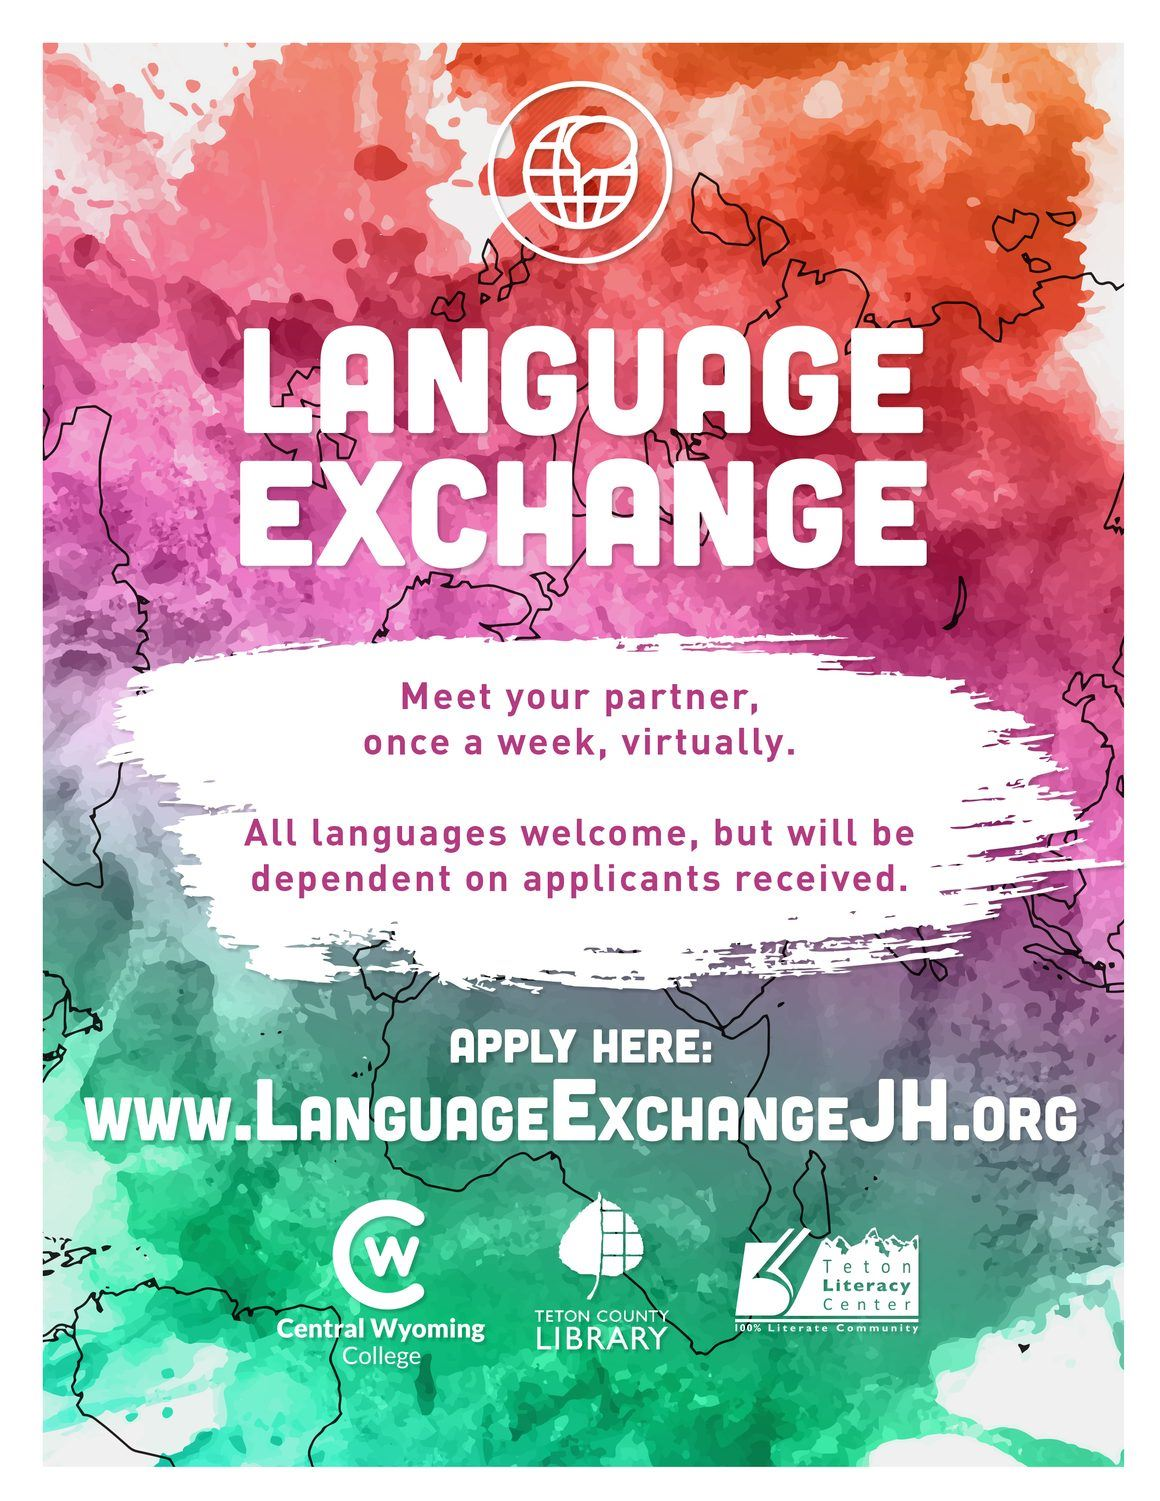 image of the flyer for the upcoming Language Exchange series